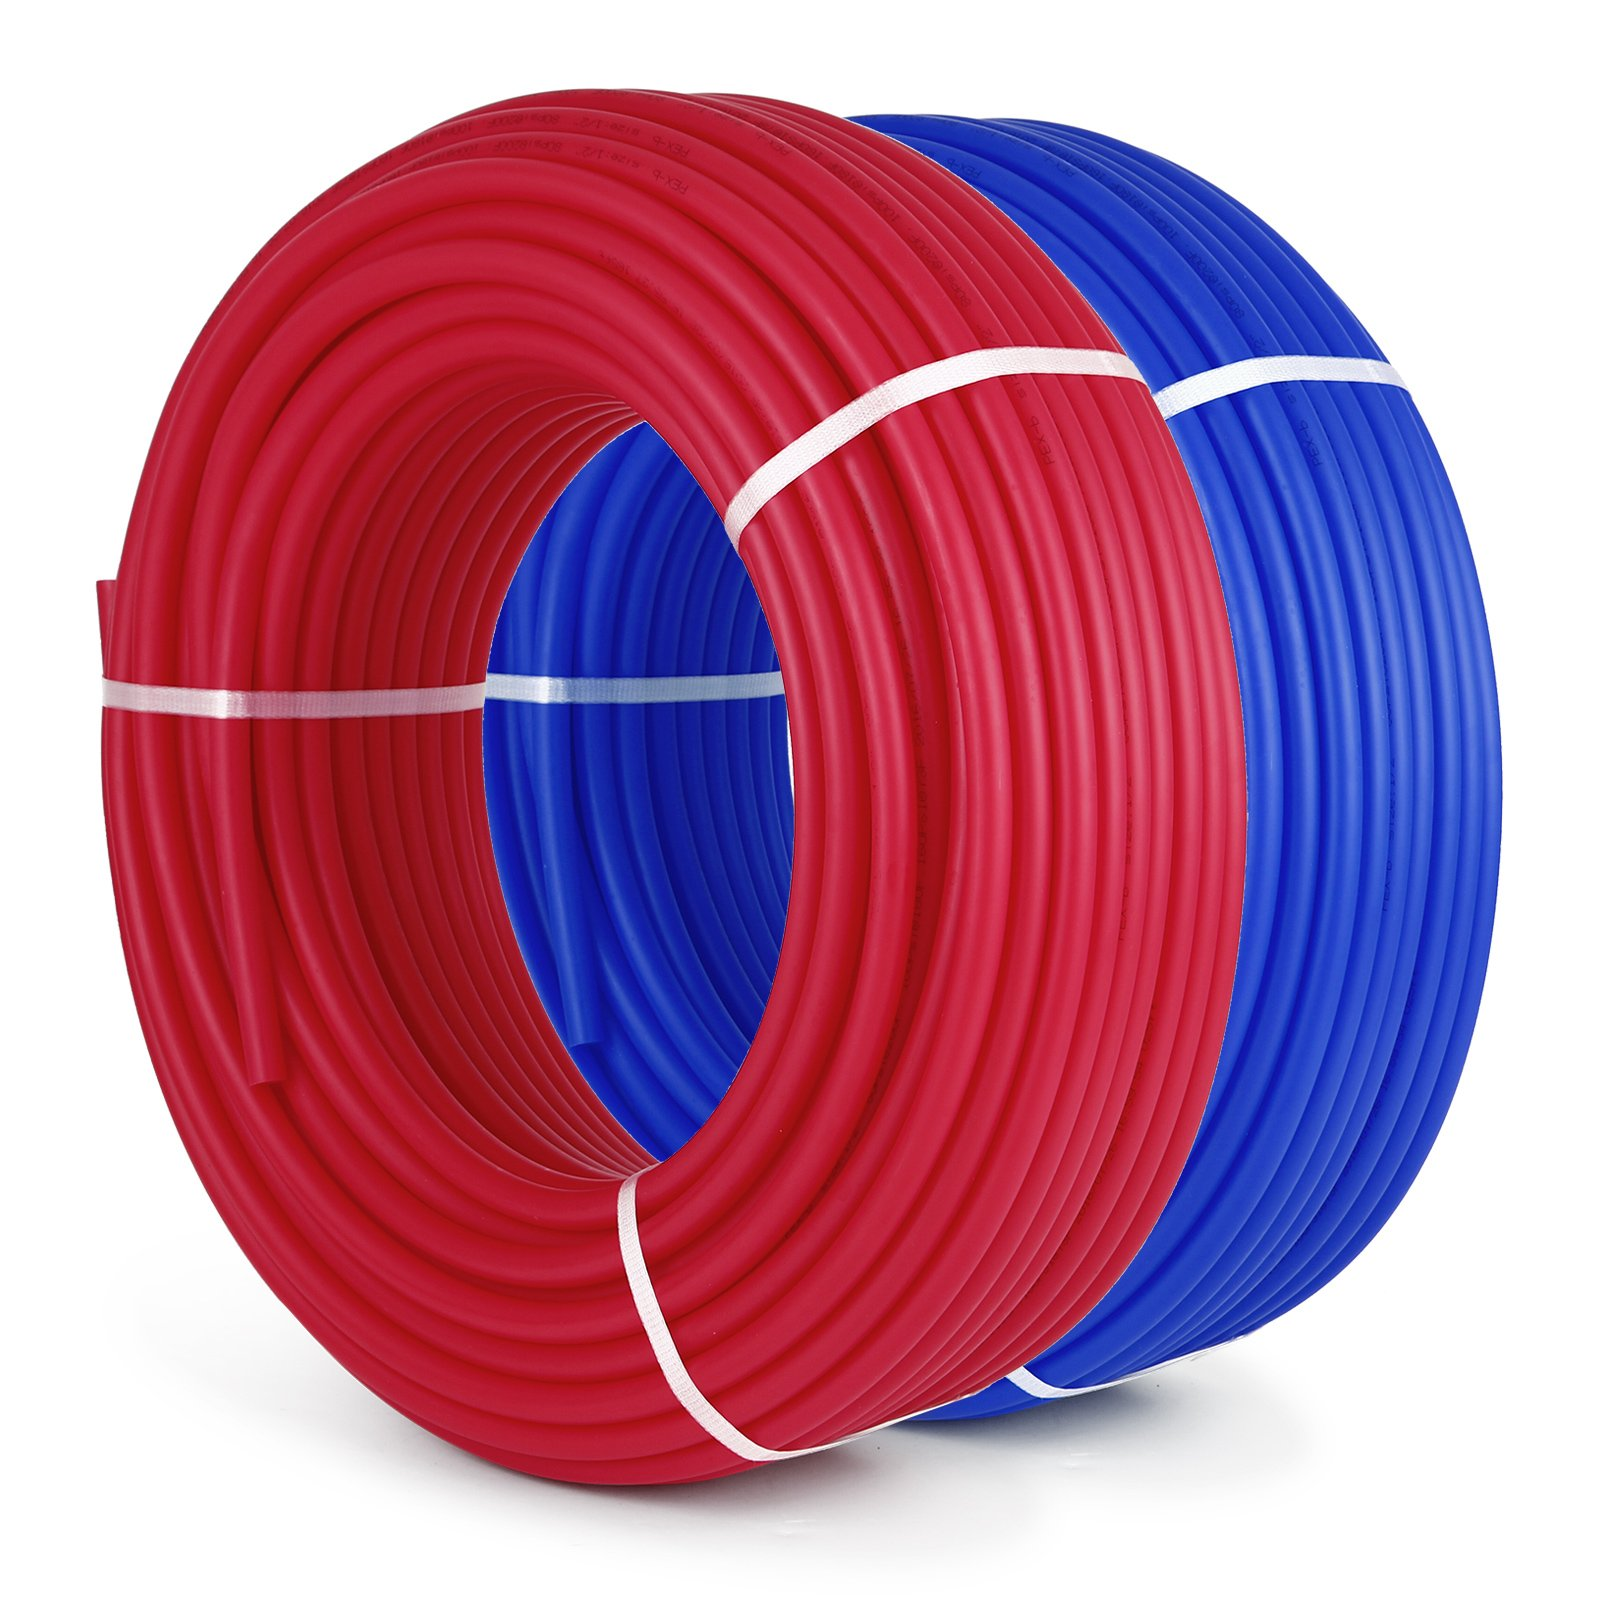 OrangeA PEX Tubing 1/2 Inch Potable Water Pipe 2 Rolls X 300Ft Tube Coil PEX-B Non Oxygen Barrier Piping for Hot Cold Plumbing and Radiant Floor Heating Applications